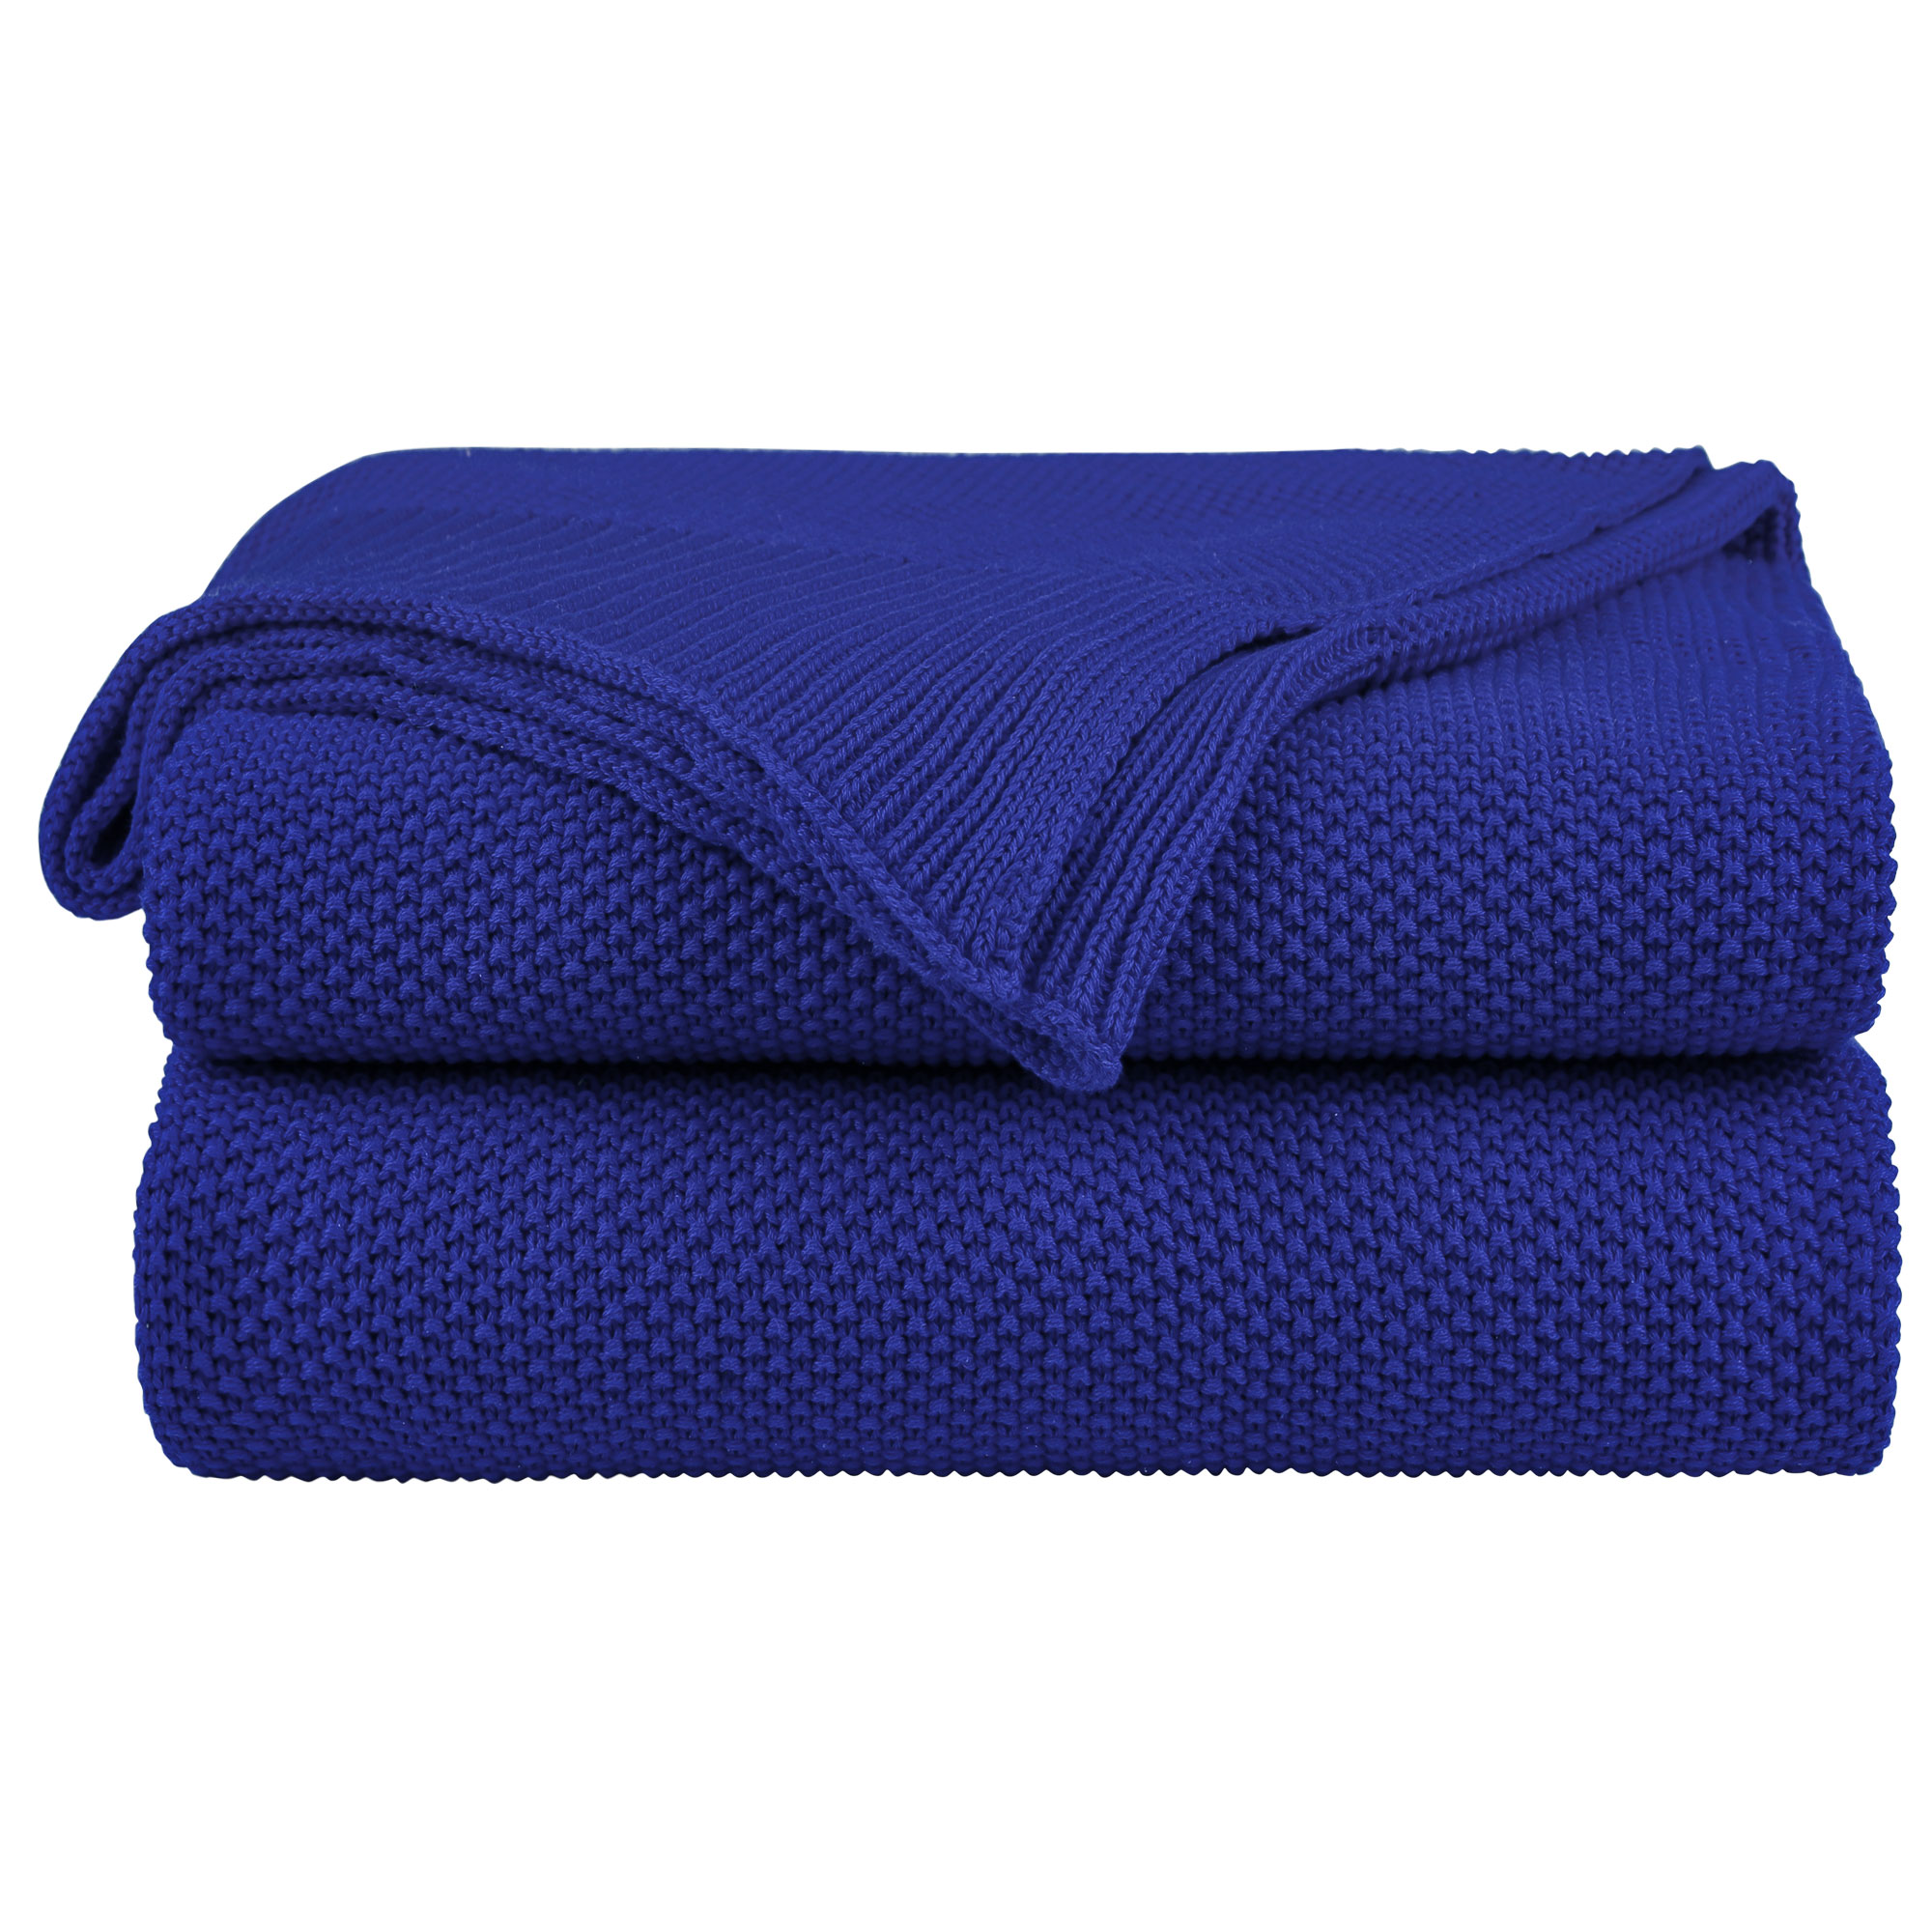 "100% Cotton Soft Warm Knit Throw Size Blanket Bed Sofa 50"" x 60"" Royal Blue"